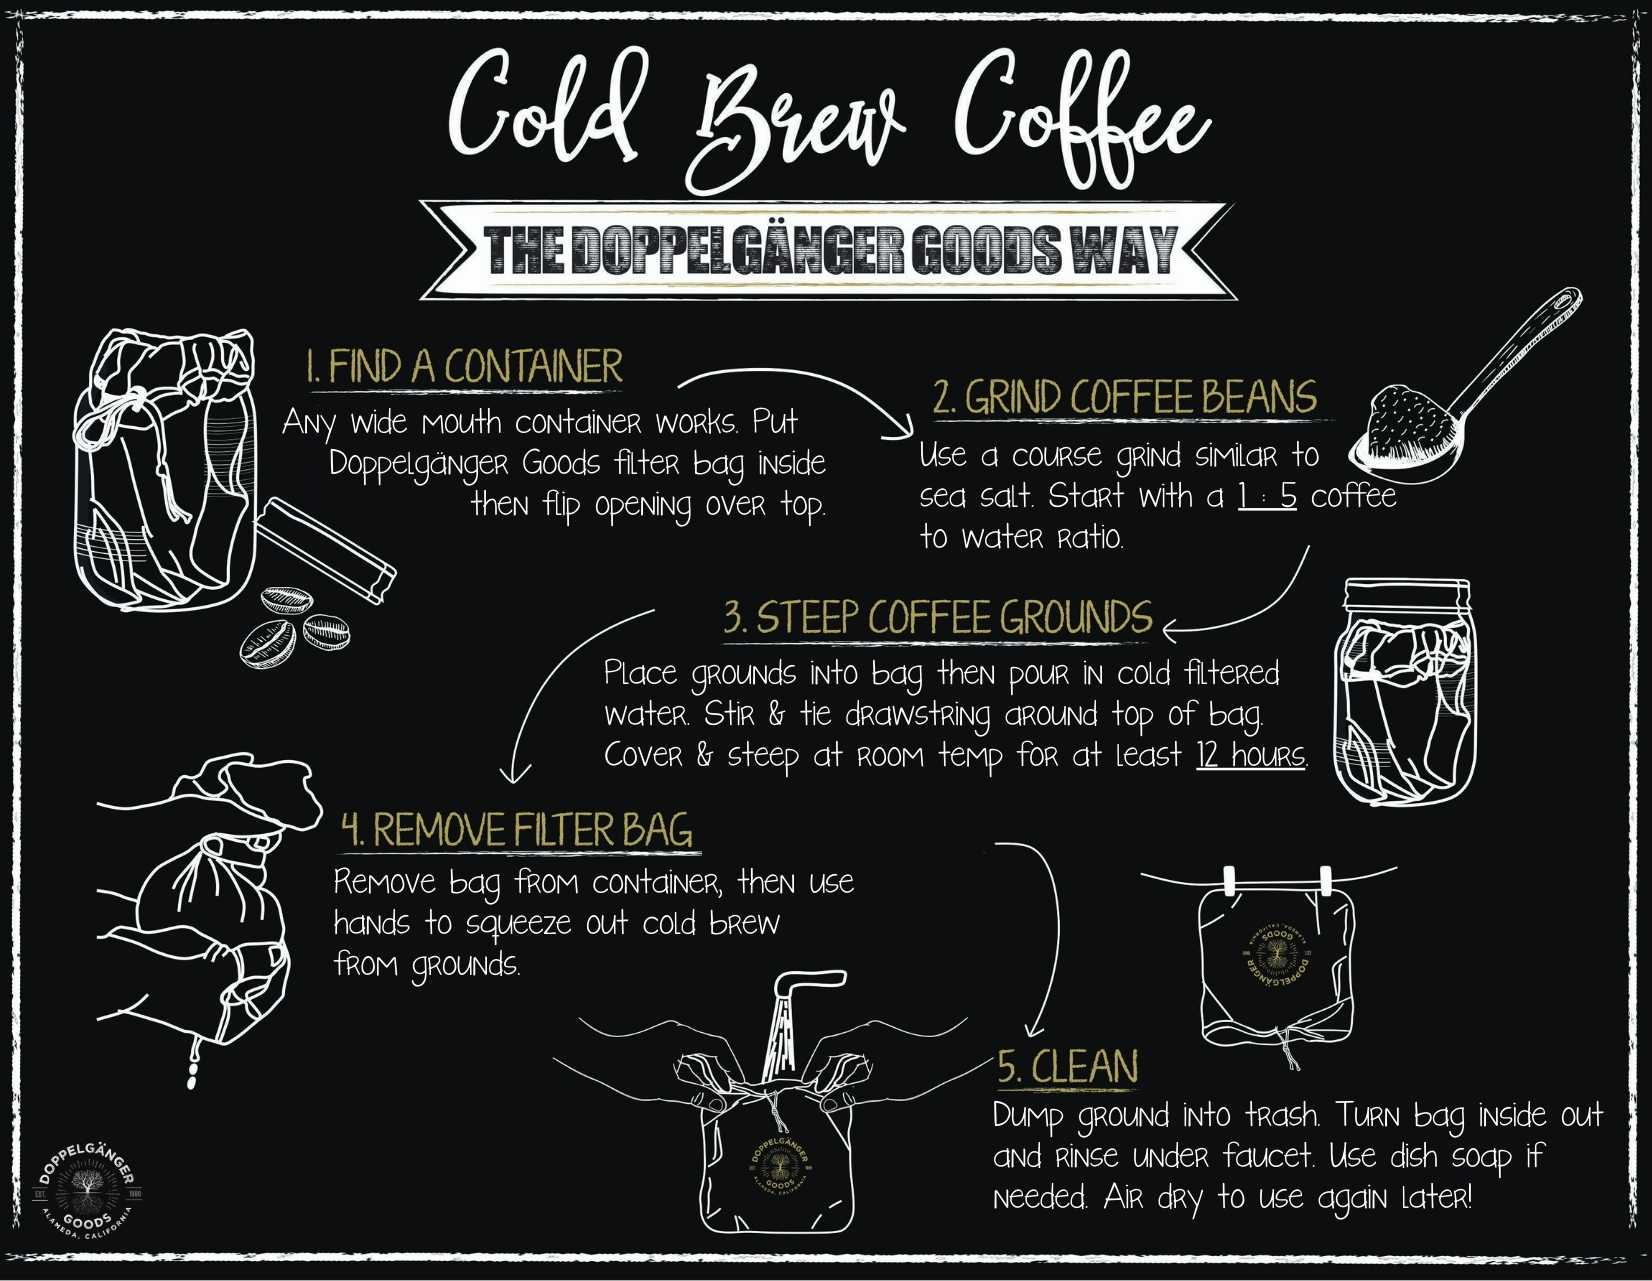 Doppelgänger goods 5 step cold brew coffee guide